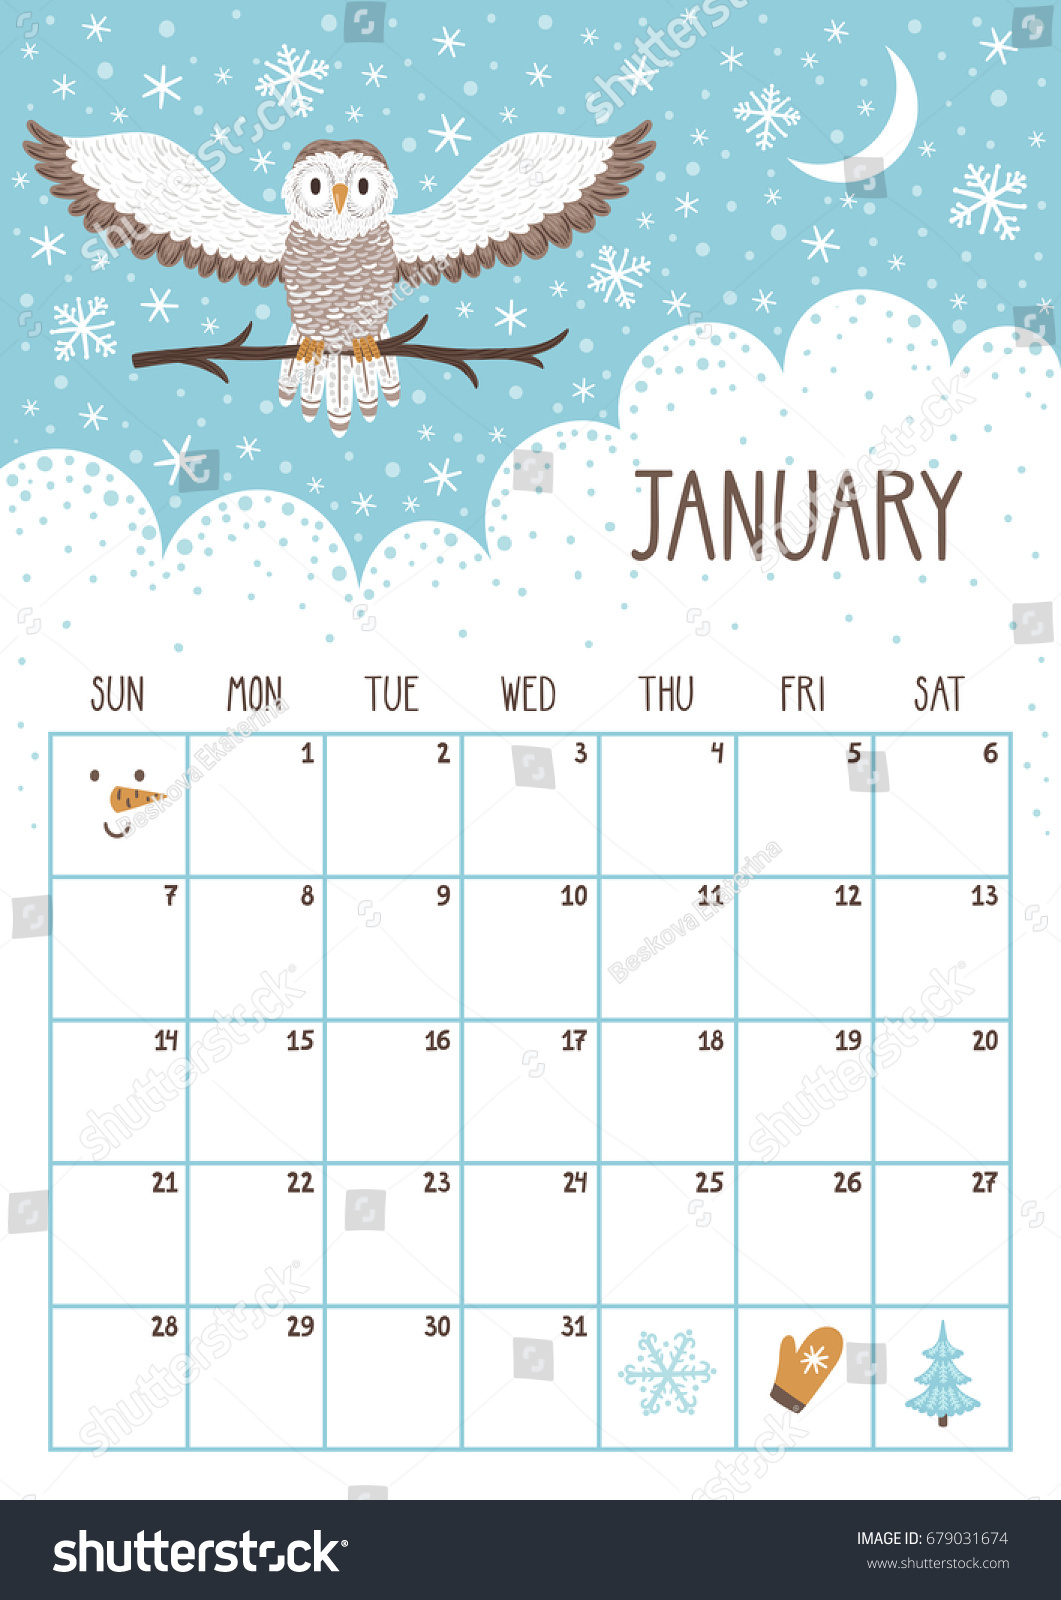 Vector Monthly Calendar Cute Owl January Stock Vector 679031674 ...